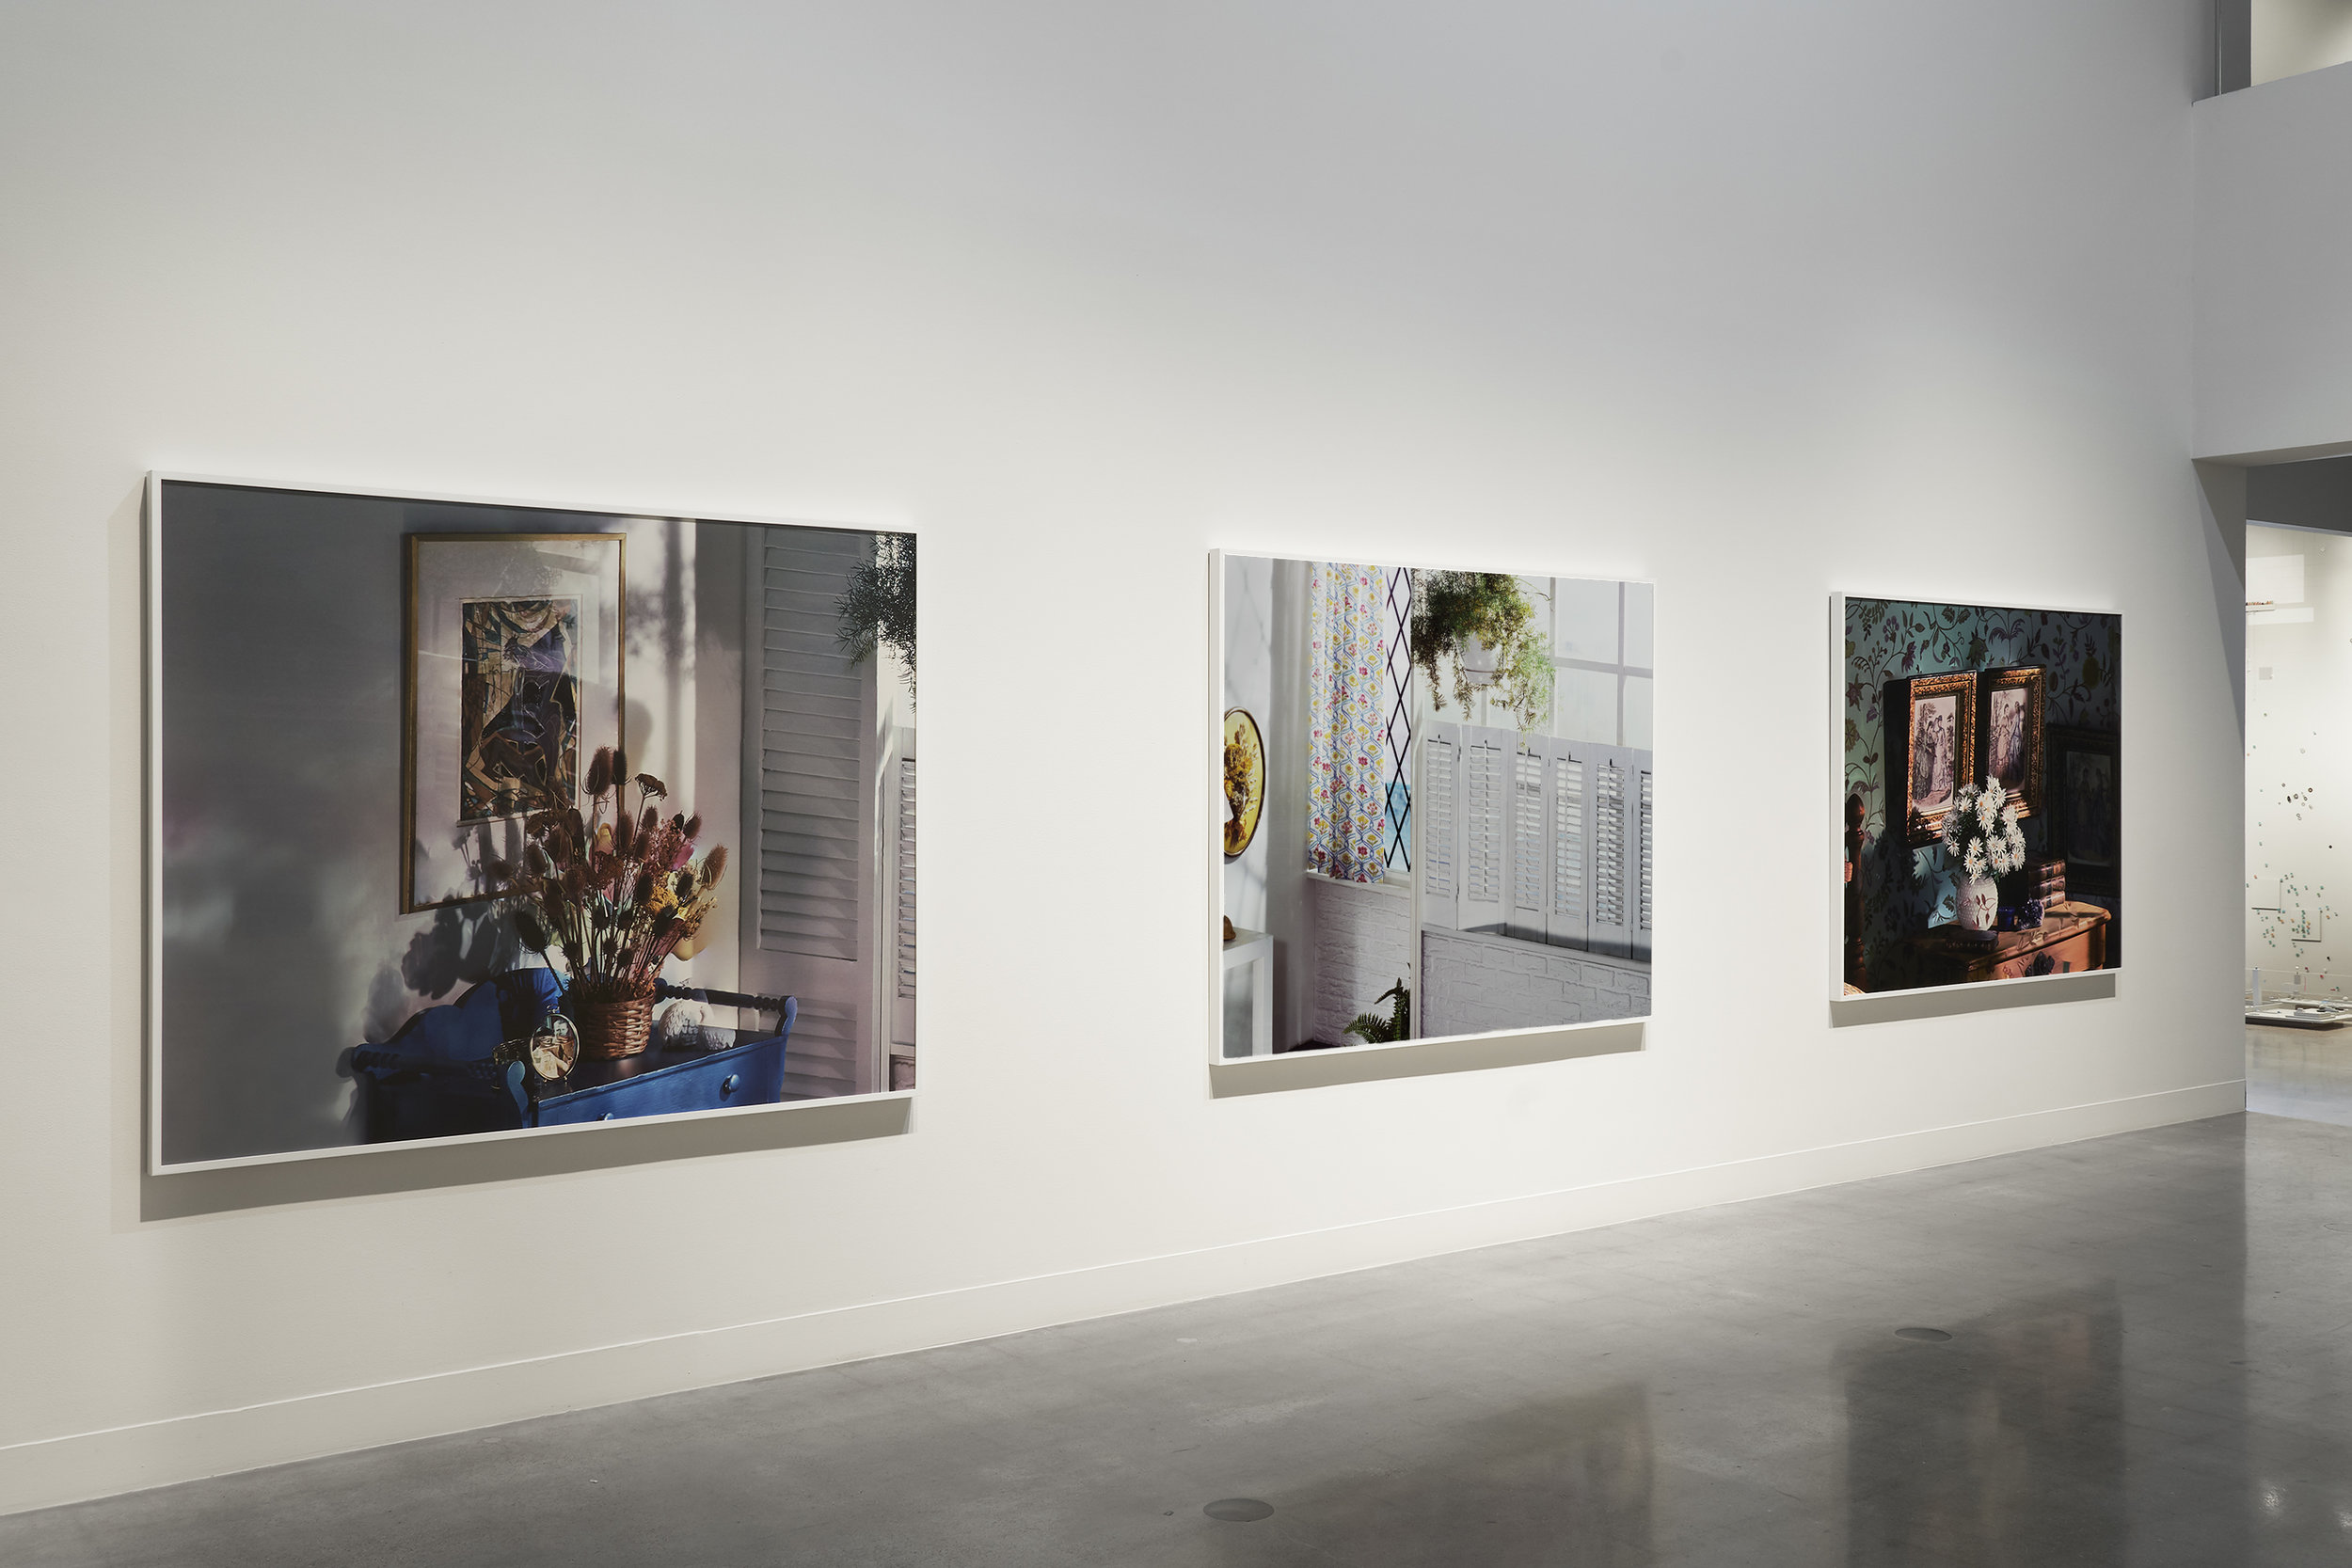 Installation View #1